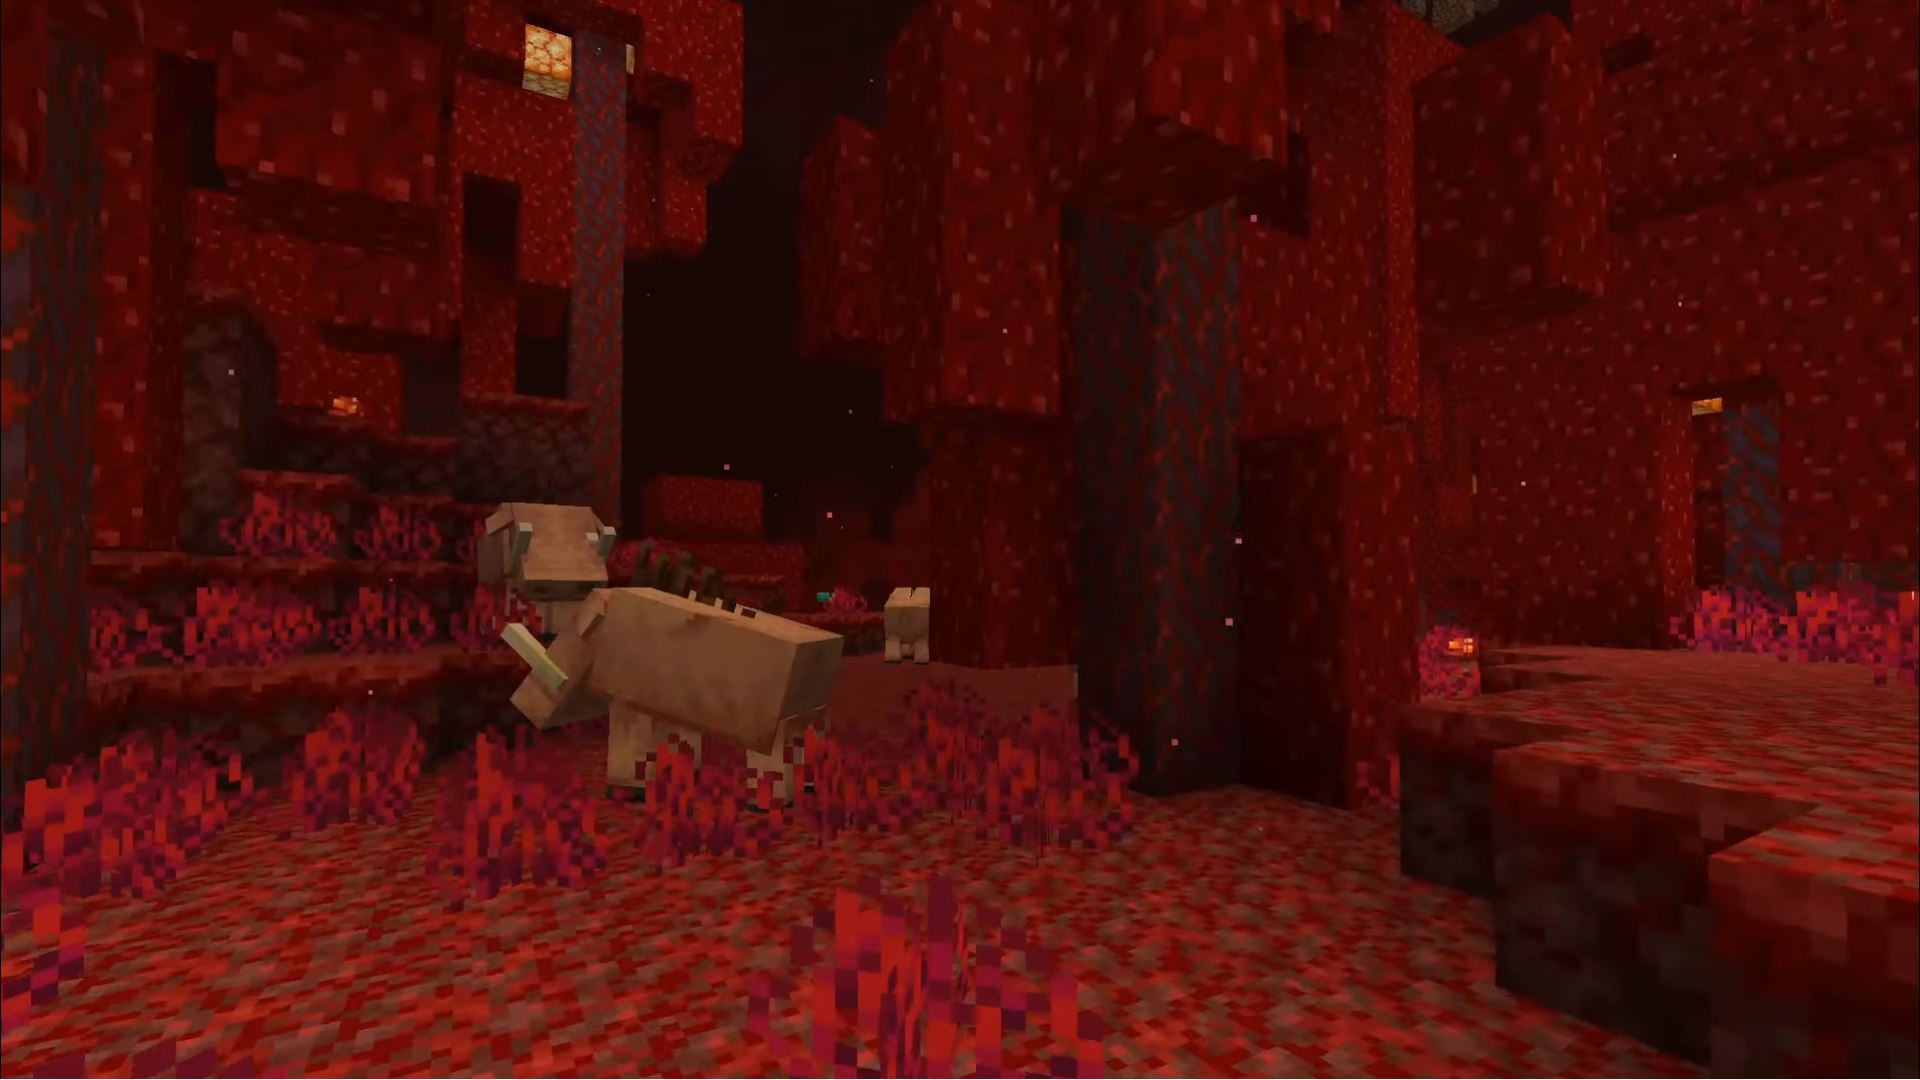 Minecraft Nether update will add multiple biomes and Piglin Beast mobs | PC Gamer